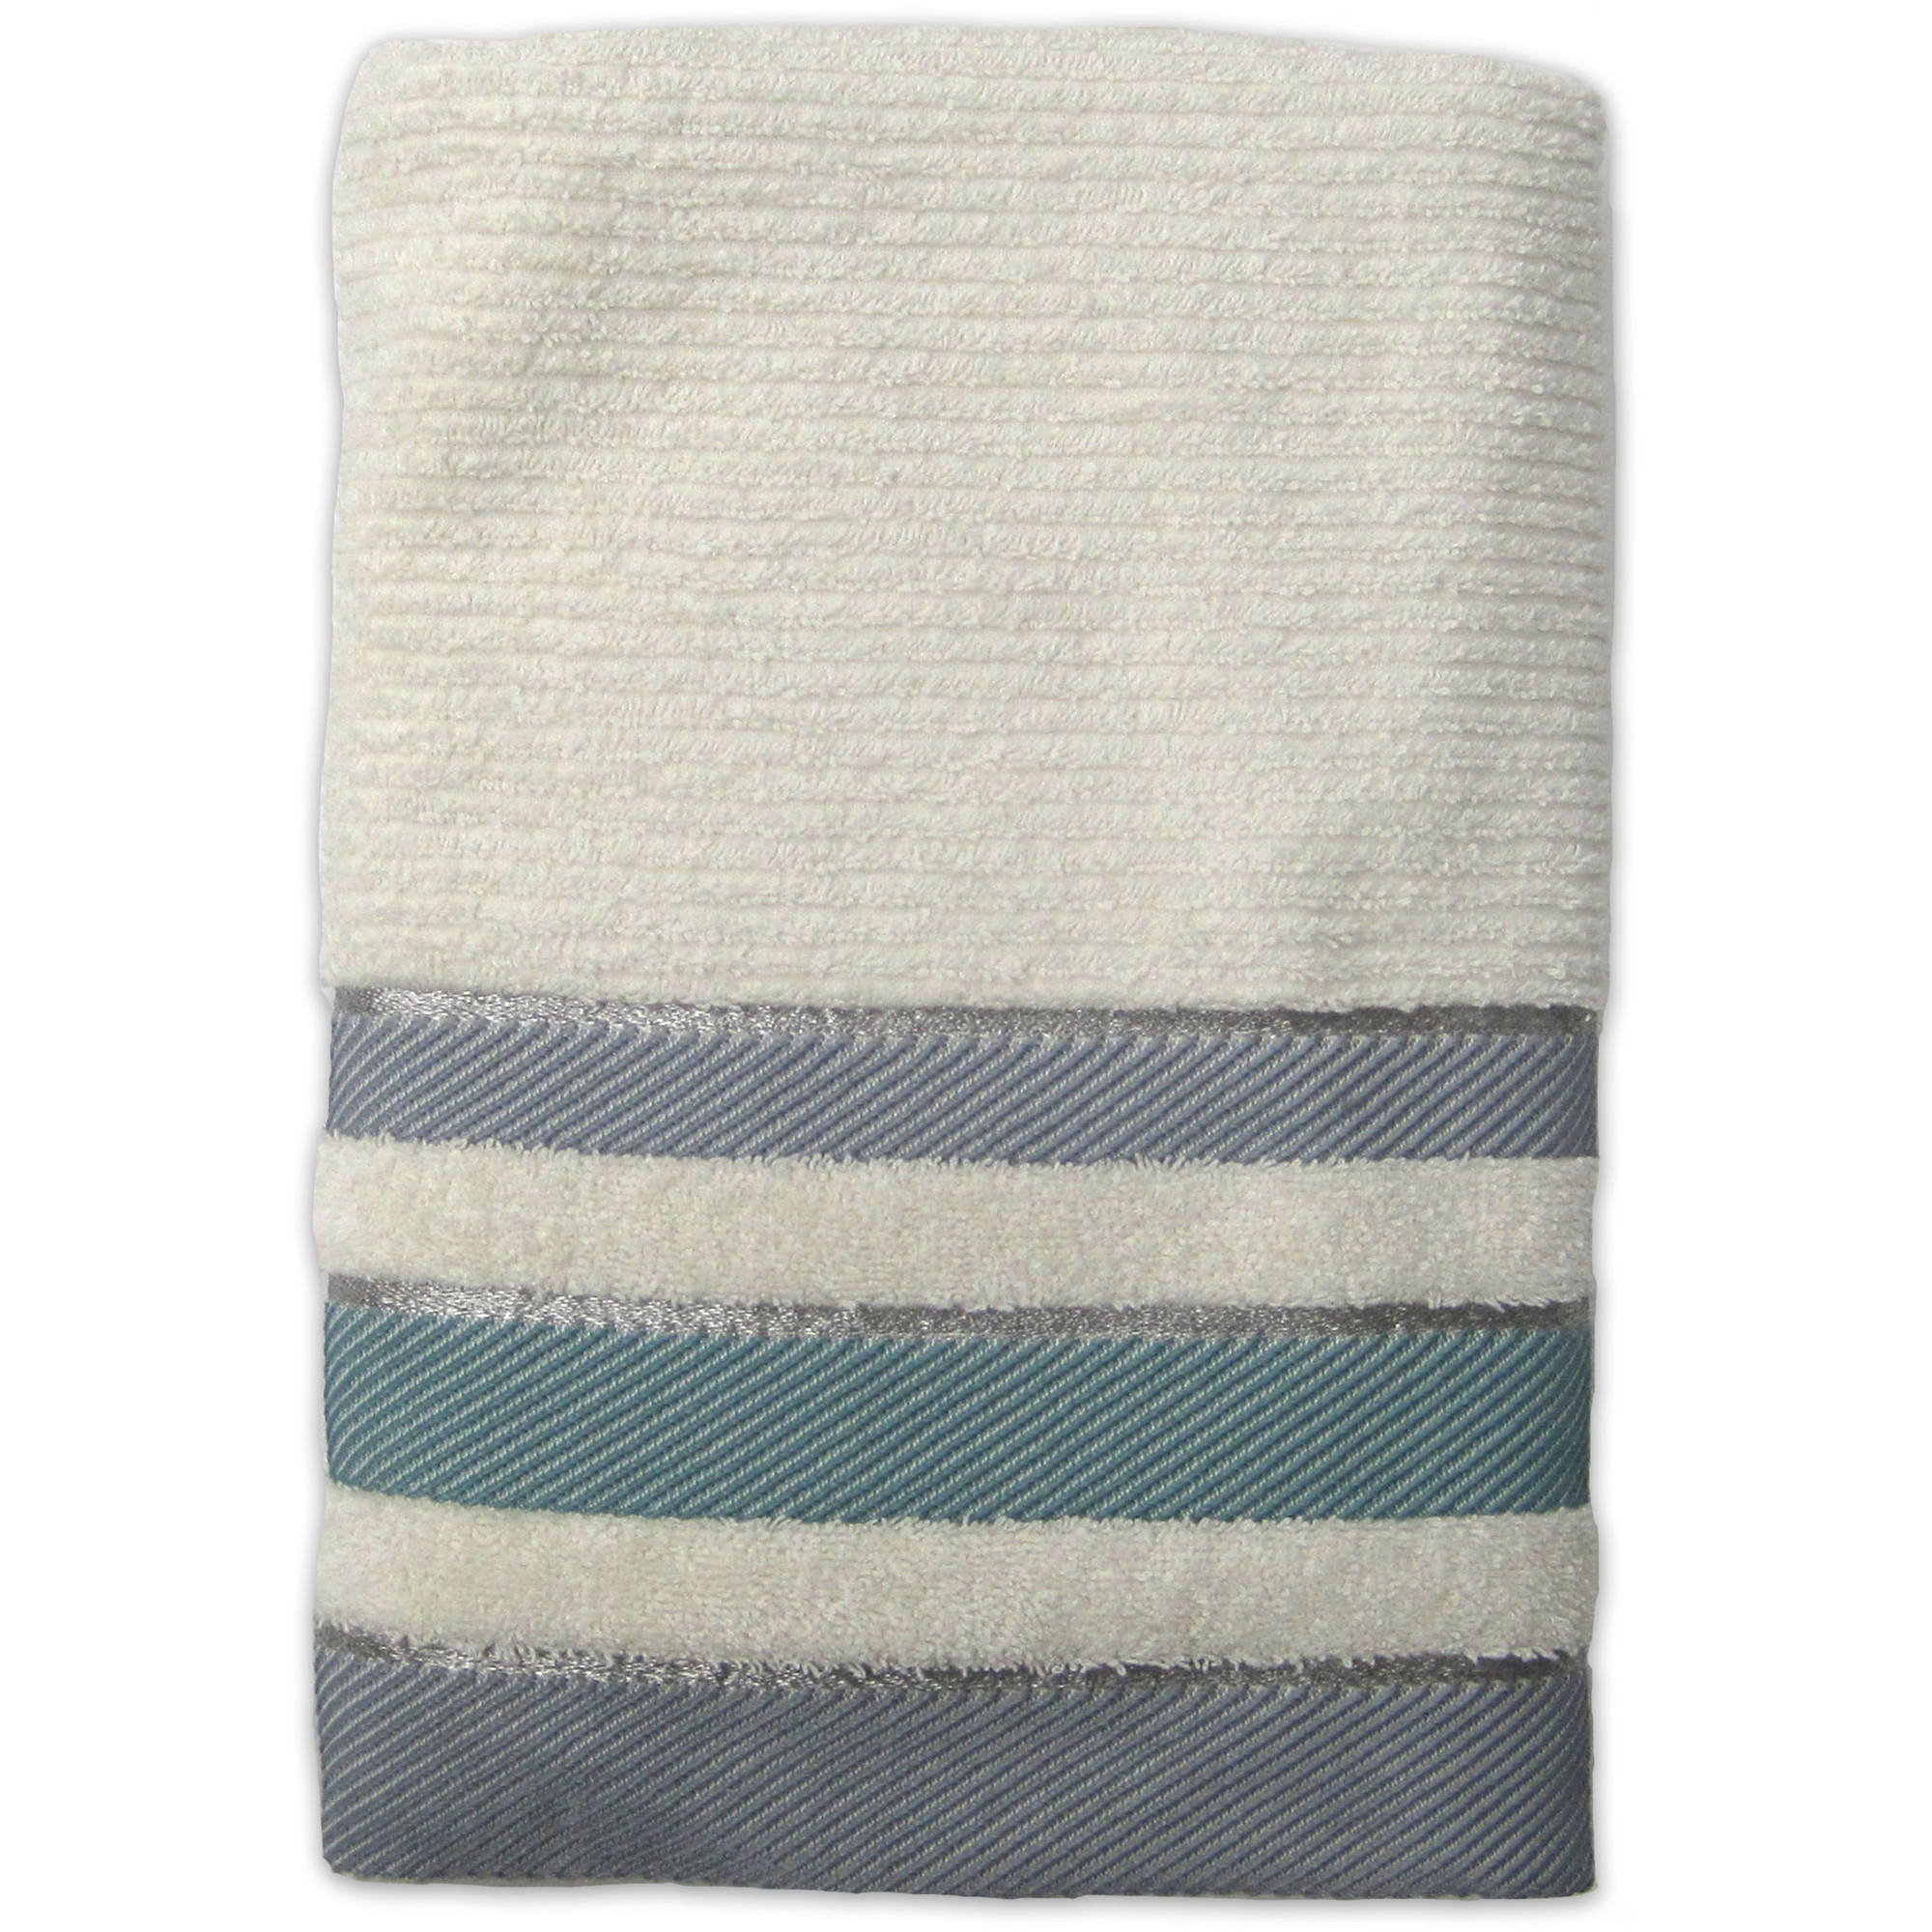 Bon Better Homes And Gardens Glimmer Bath Towel Collection Walmartcom